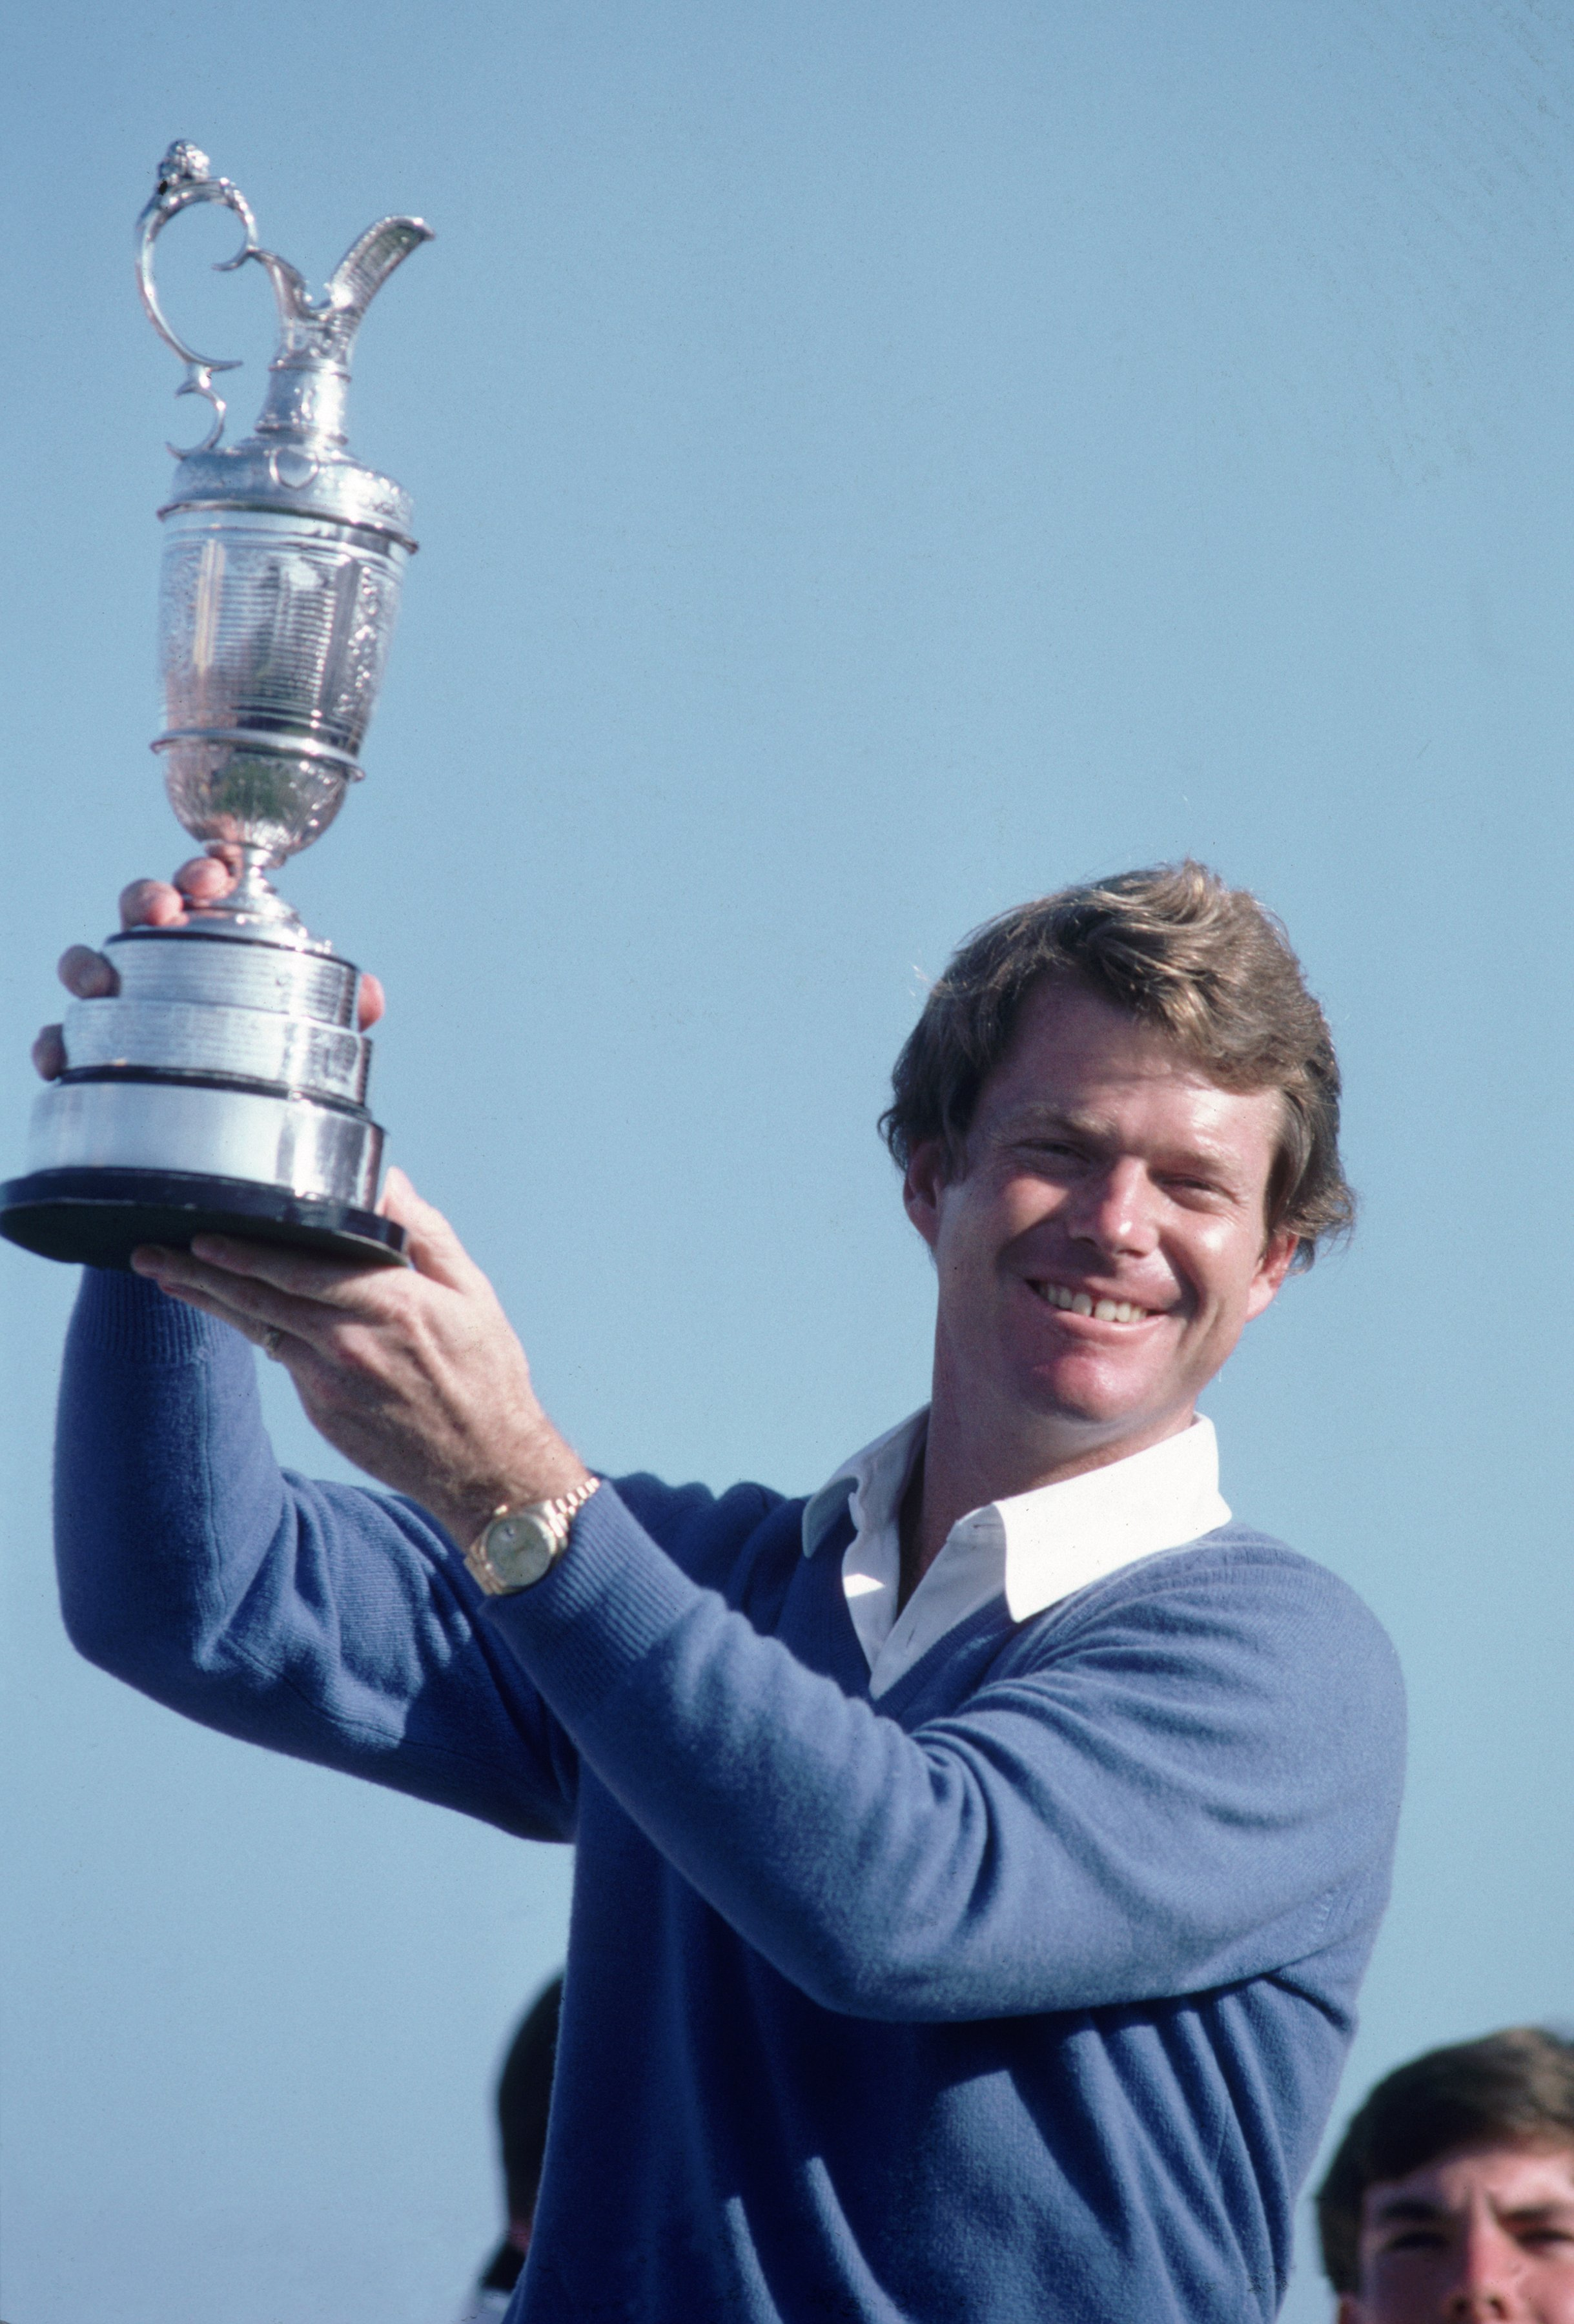 18 Jul 1982:  Tom Watson of the USA holds aloft the Claret Jug after winning the British Open played at Royal Troon in Scotland \ Mandatory Credit: Bob Martin /Allsport